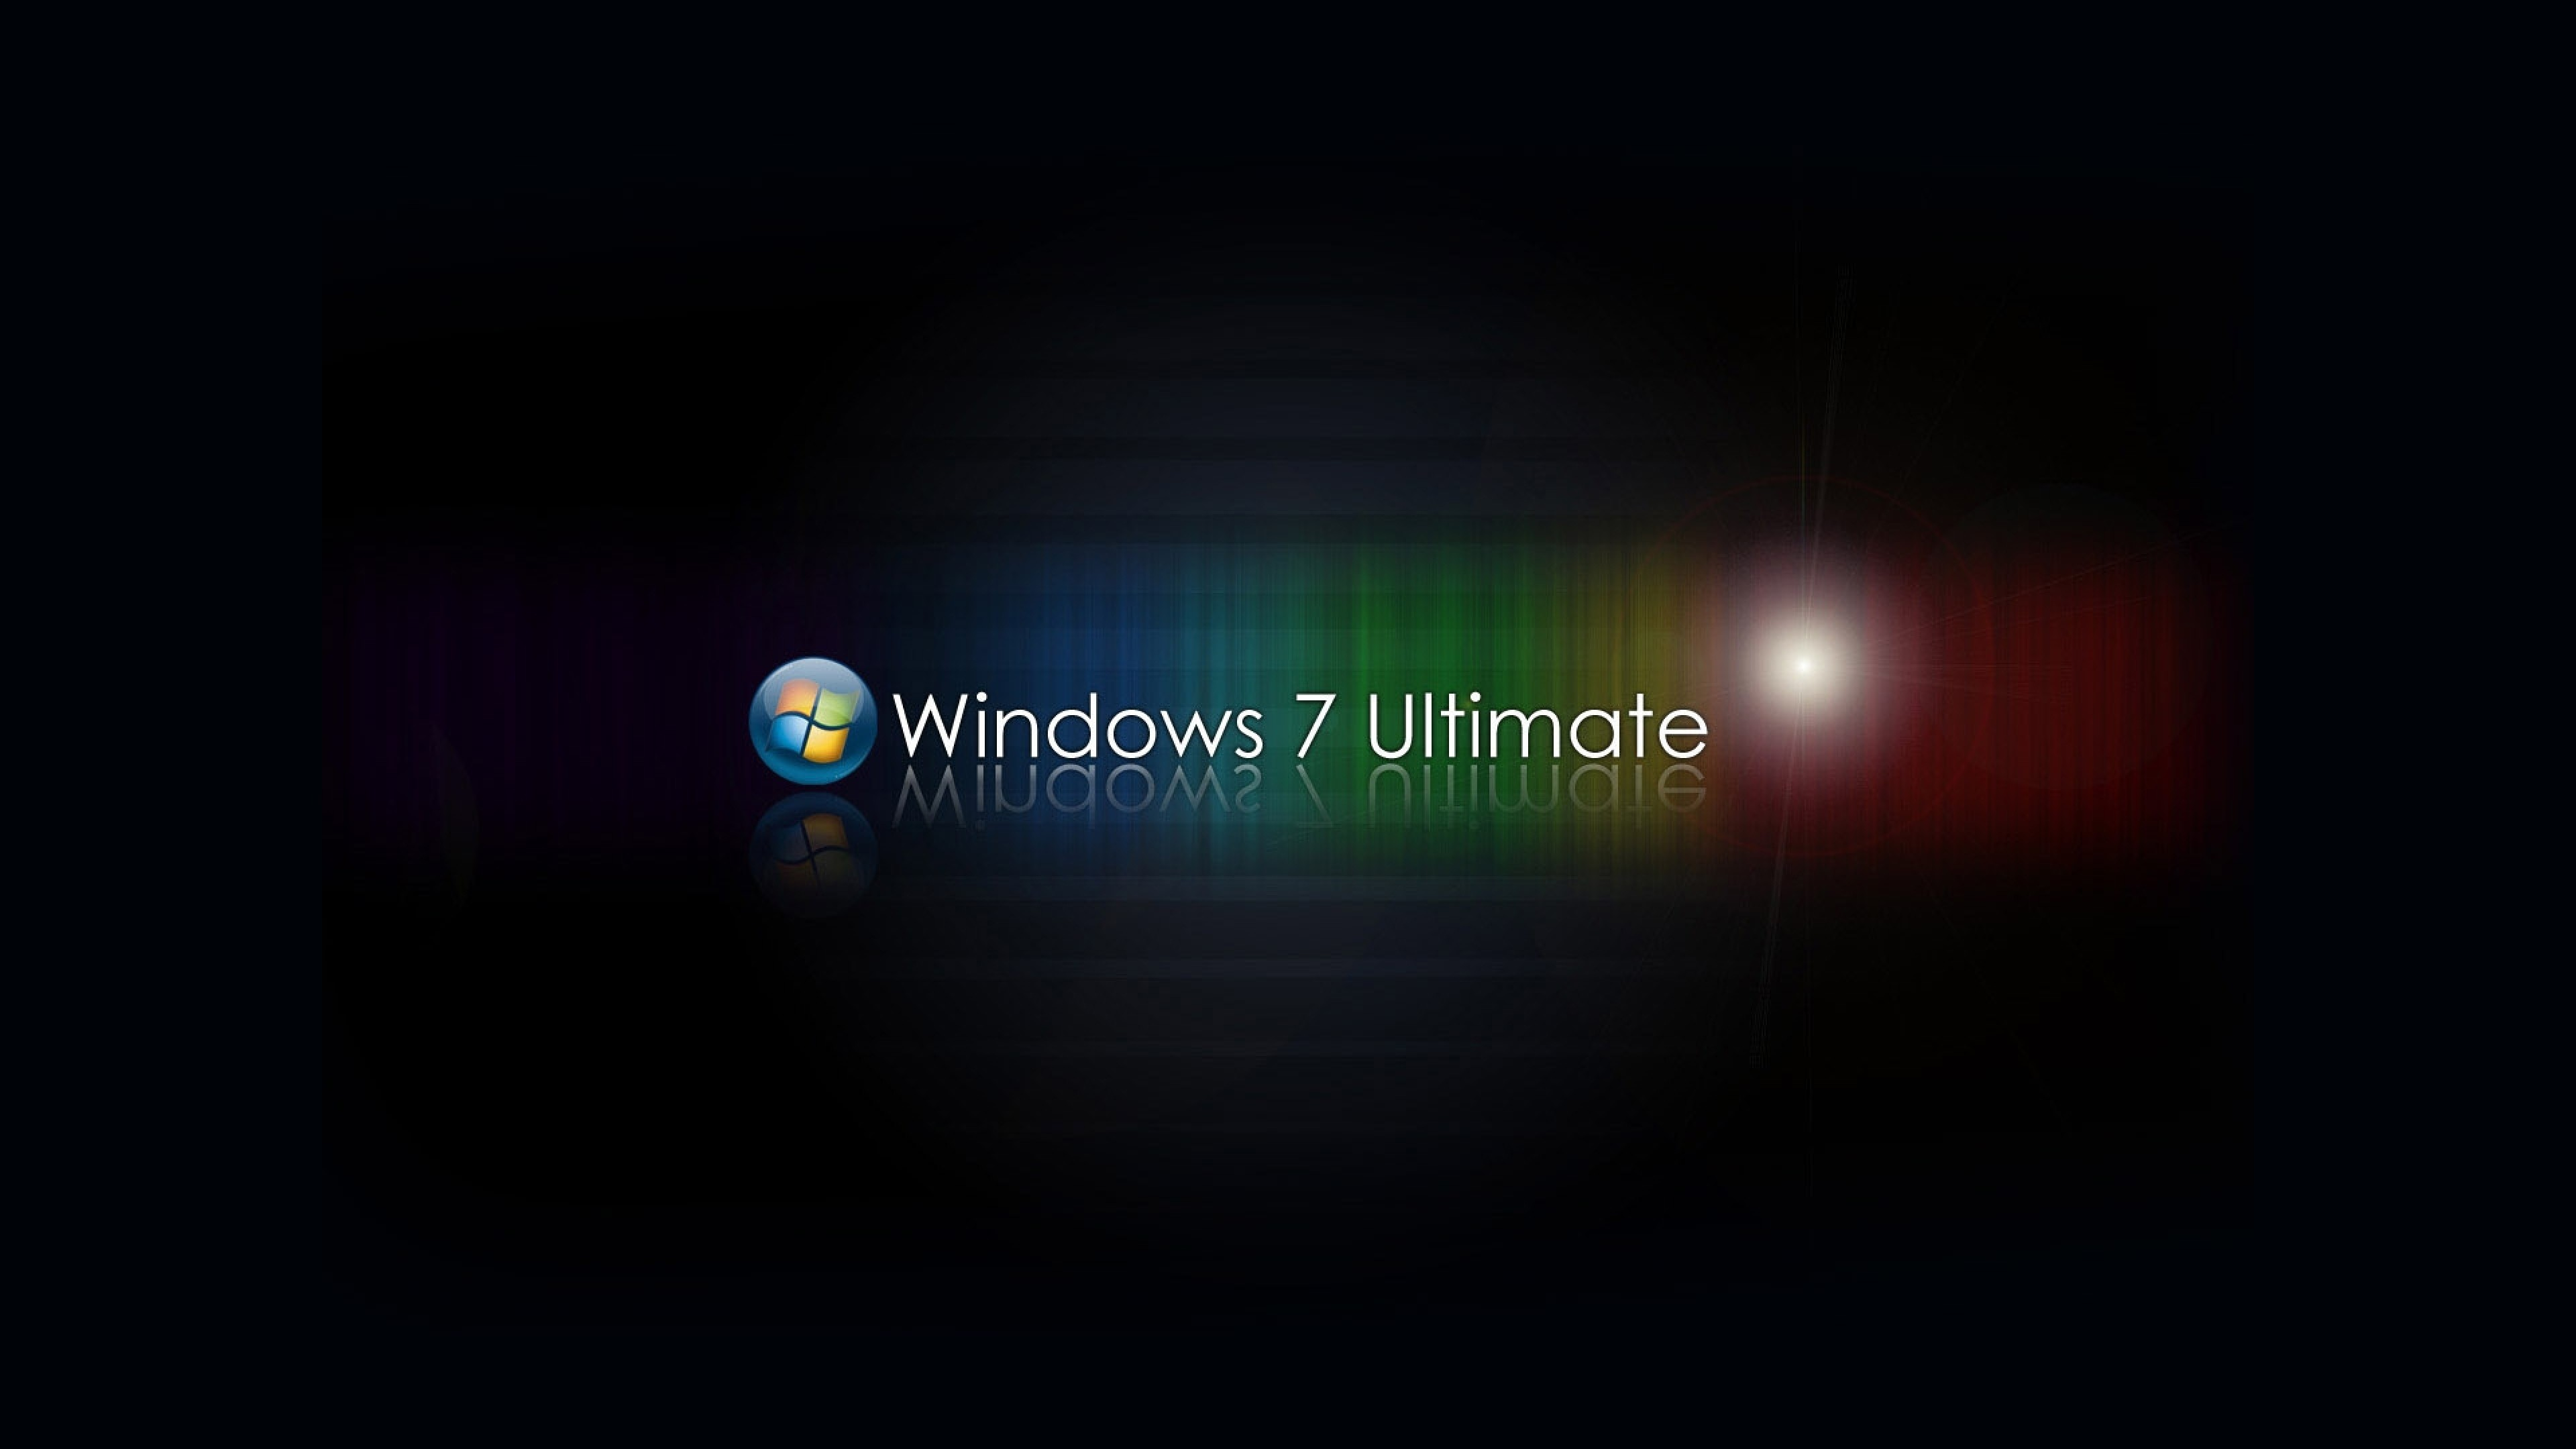 3840x2160 Preview wallpaper windows 7 ultimate, ultimate, red, black, blue